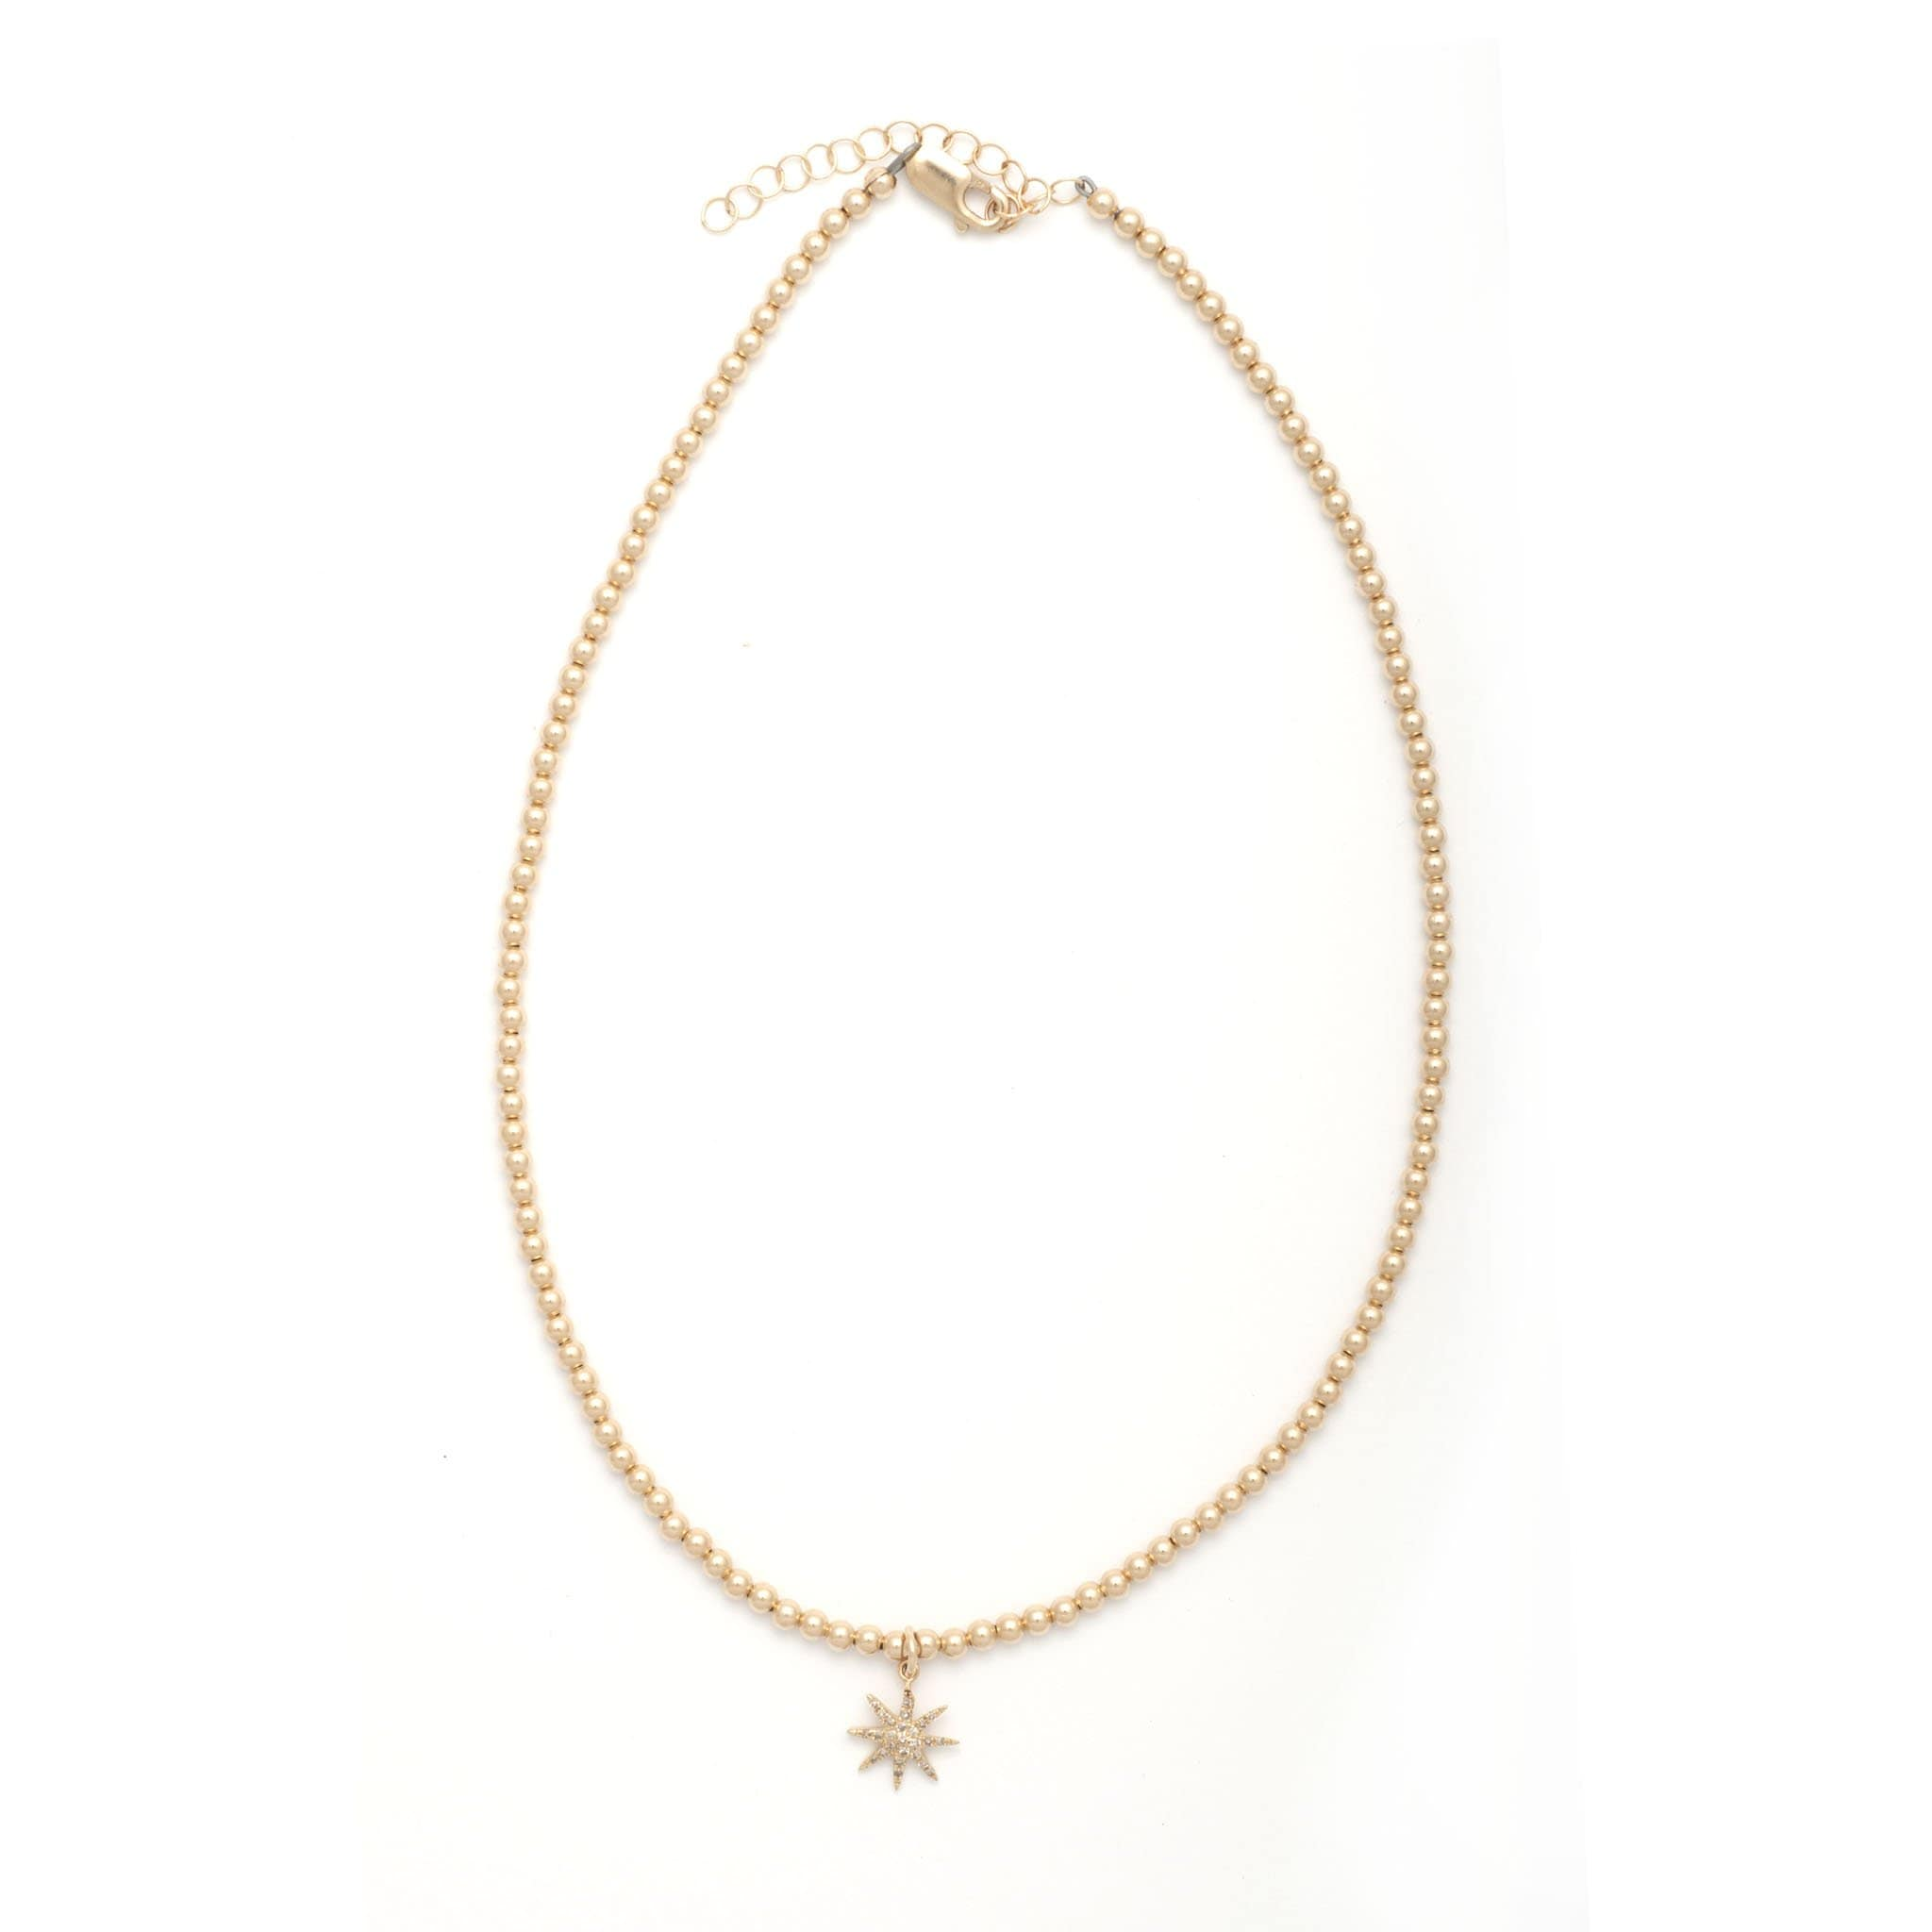 Karen Lazar Diamond Starburst Gold Bead Necklace - Curated Los Angeles